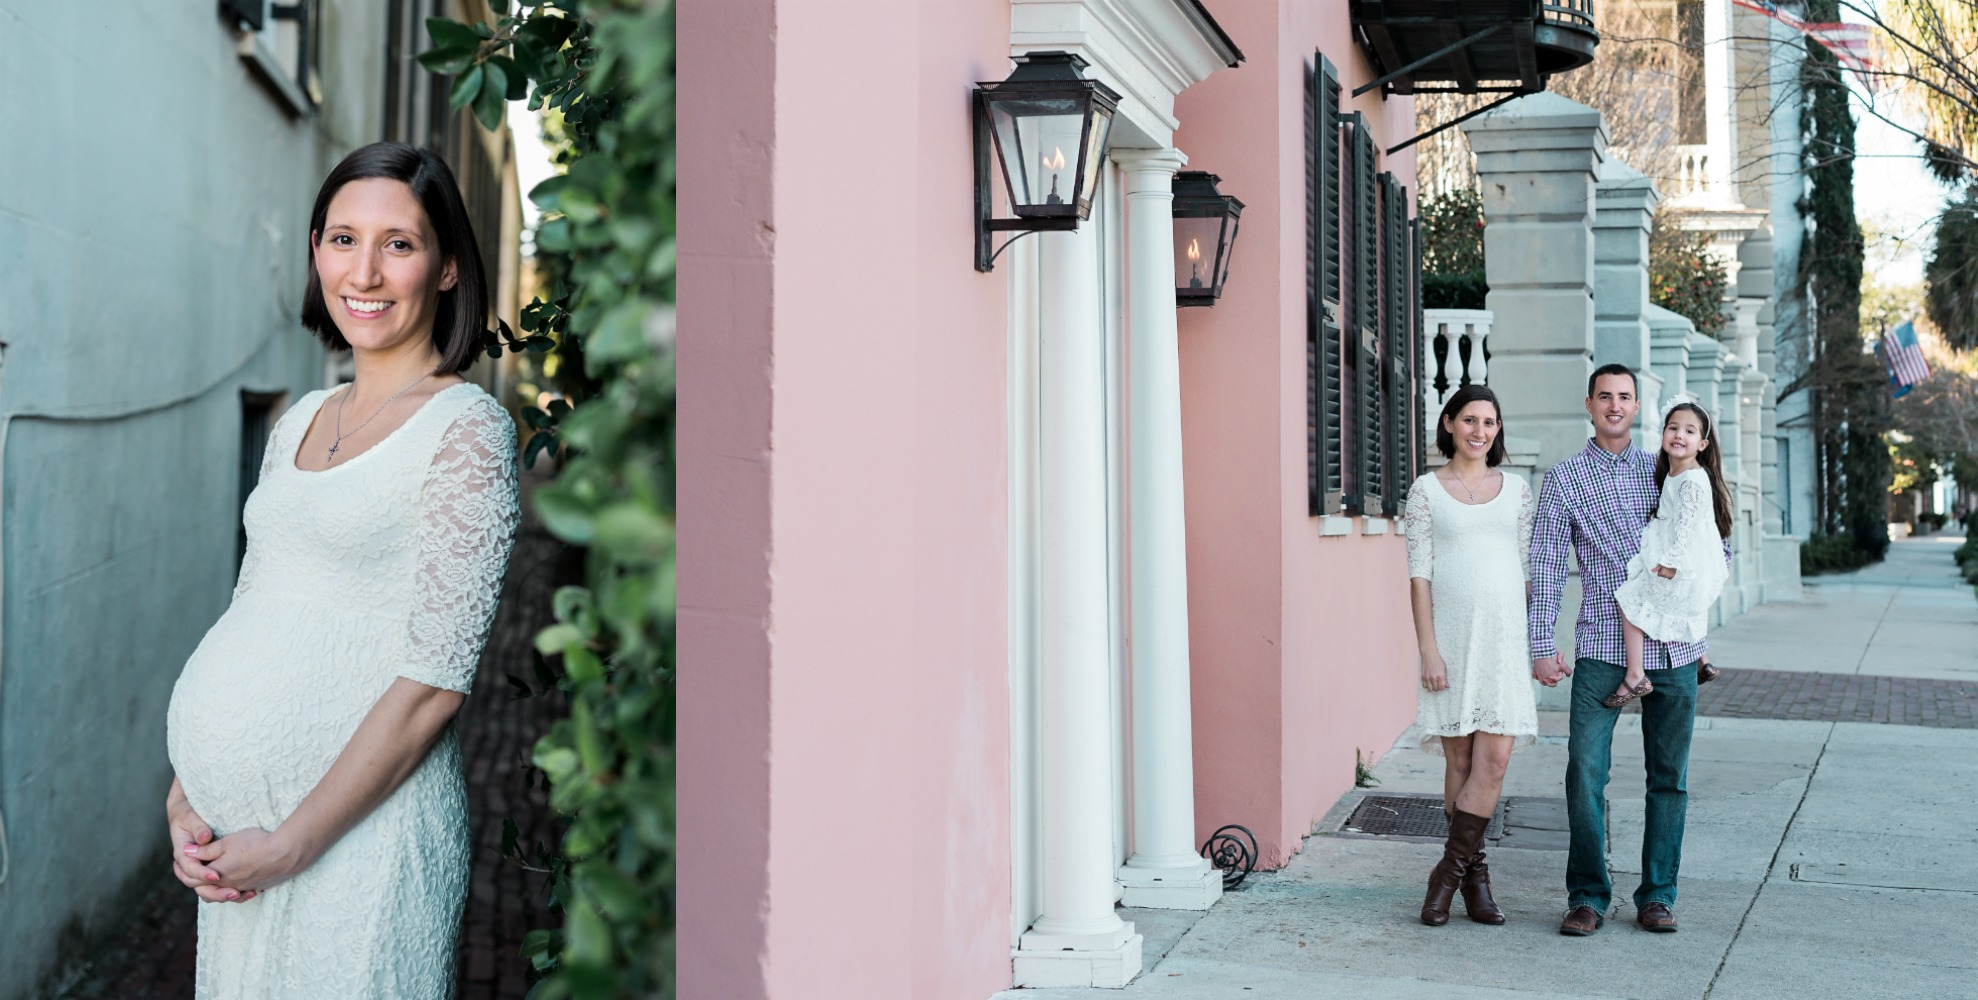 Charleston-Maternity-Photographer-3.jpg